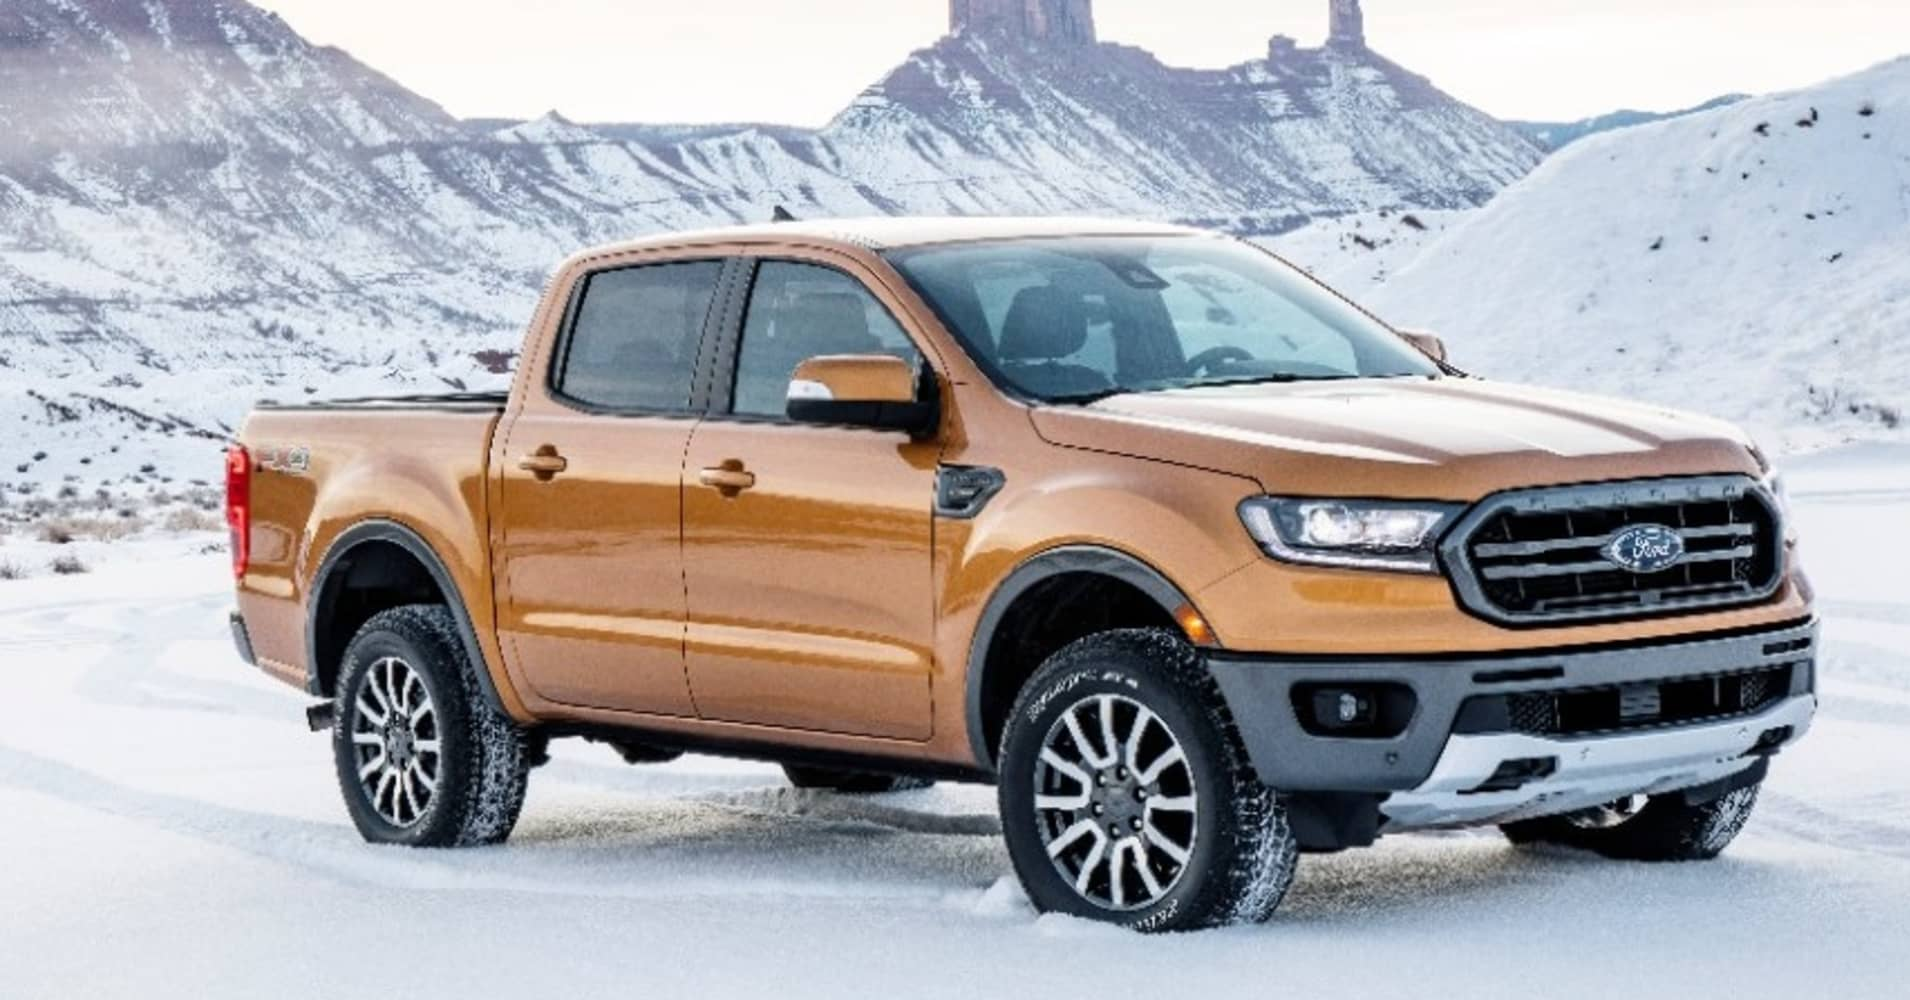 Ford has resurrected the Ranger pickup truck